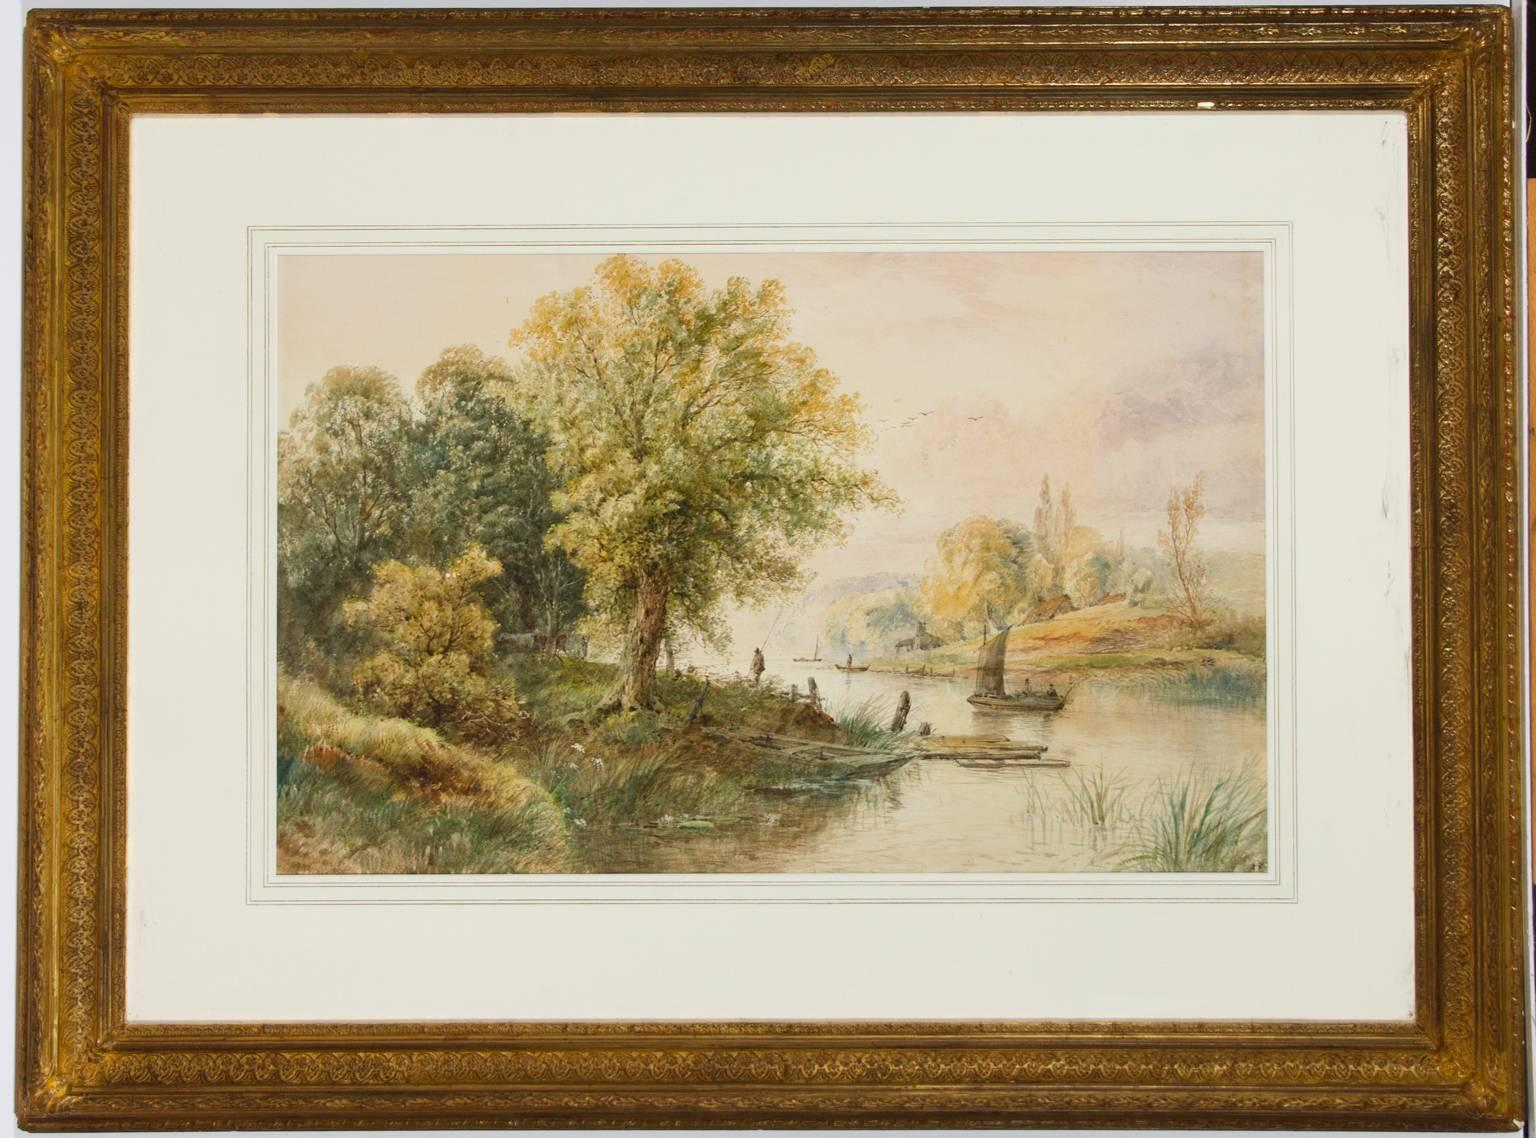 Attributed to Edwin Earp - Gilt Framed Large 19th Century Watercolour, Landscape